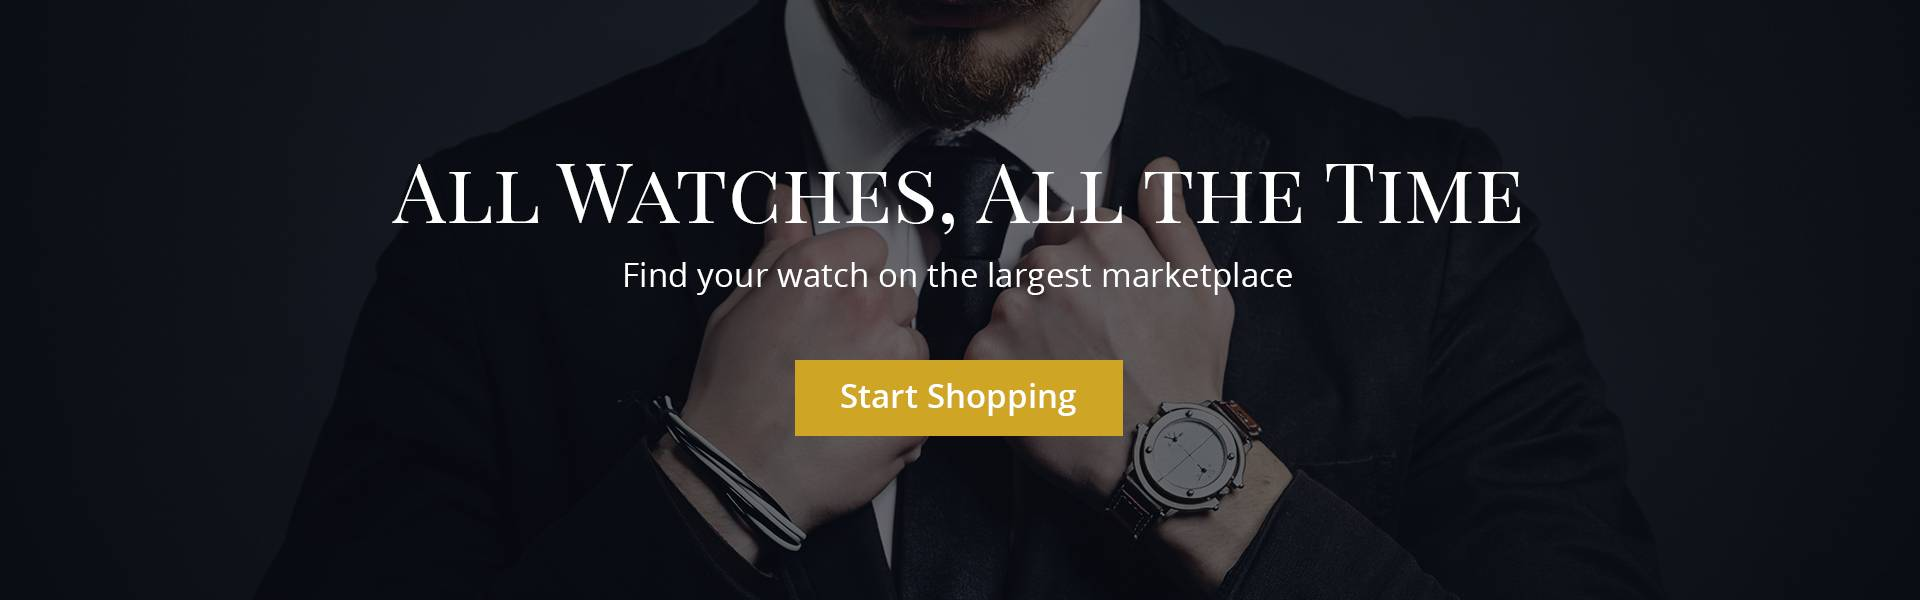 All Watches, All the Time